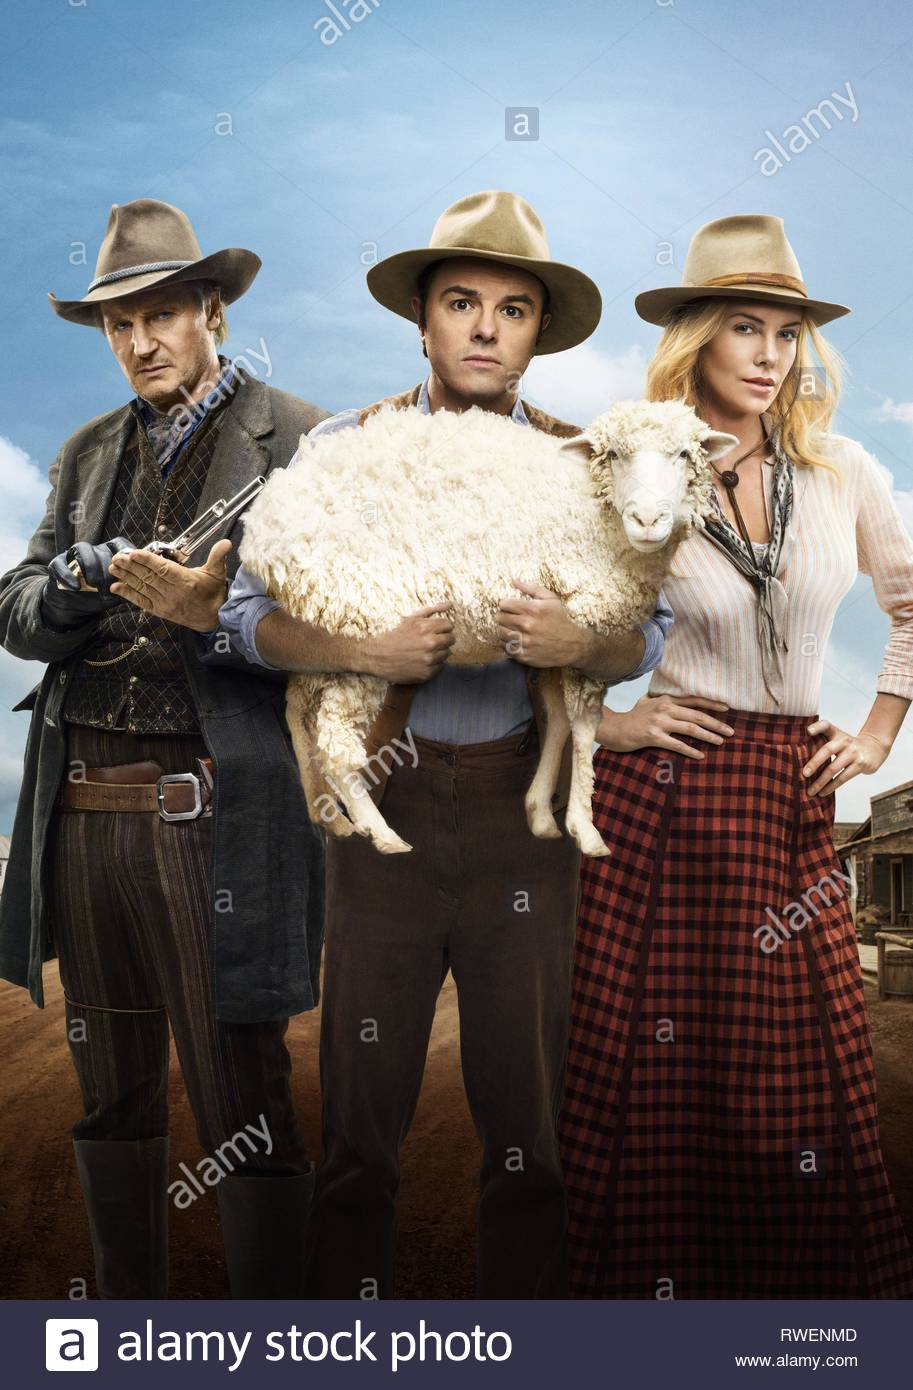 NEESON,MACFARLANE,THERON, A MILLION WAYS TO DIE IN THE WEST, 2014 - Stock Image